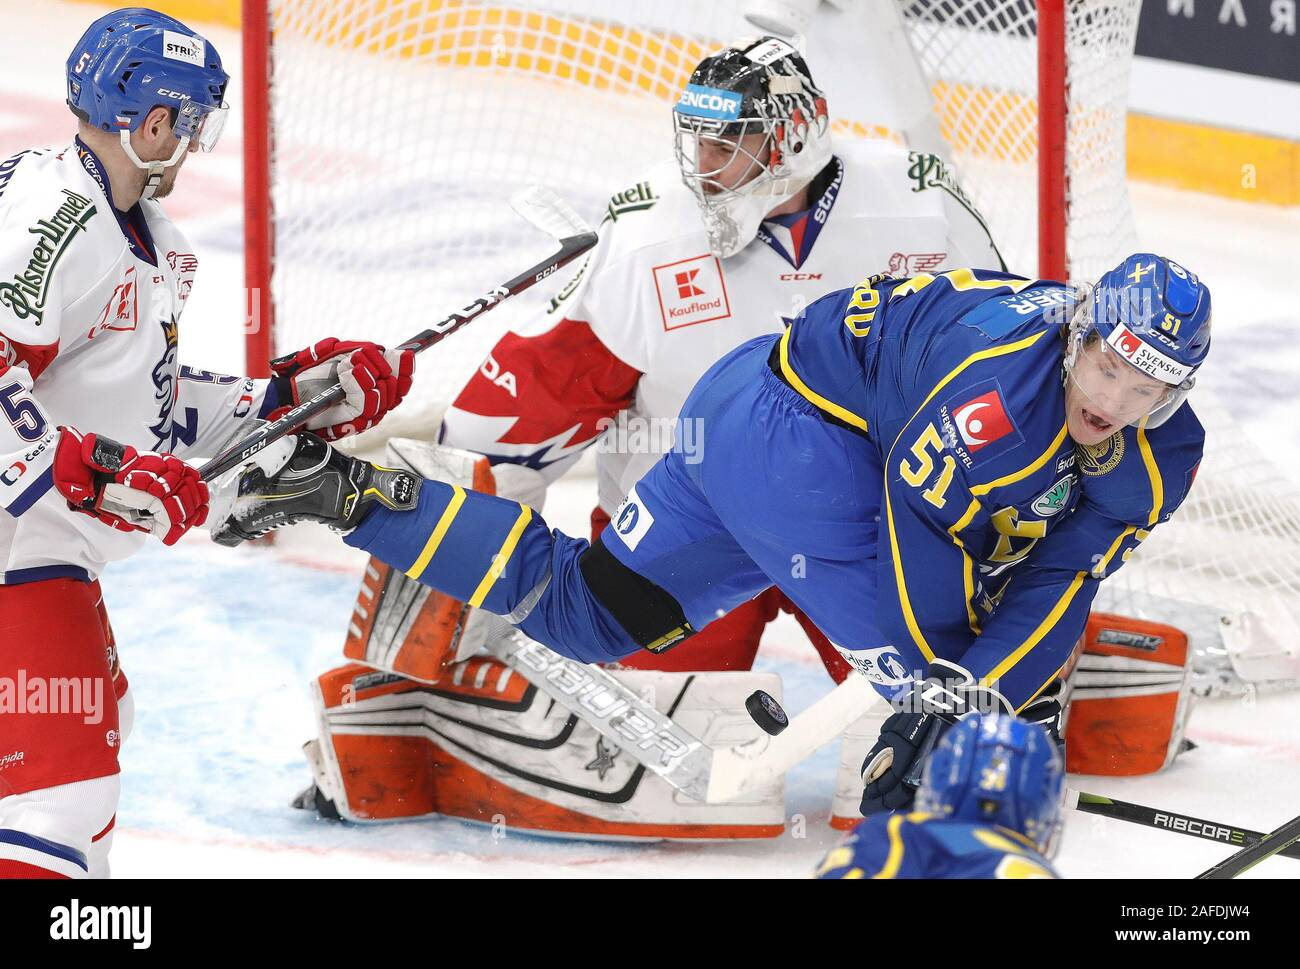 Moscow, Russia. 15th Dec, 2019. MOSCOW, RUSSIA - DECEMBER 15, 2019: The Czech Republic's Jakub Jerabek, goalie Marek Langhamer and Sweden's Emil Sylvegard (L-R) in their 2019/20 Euro Hockey Tour Channel One Cup ice hockey match at CSKA Arena. Mikhail Japaridze/TASS Credit: ITAR-TASS News Agency/Alamy Live News Stock Photo